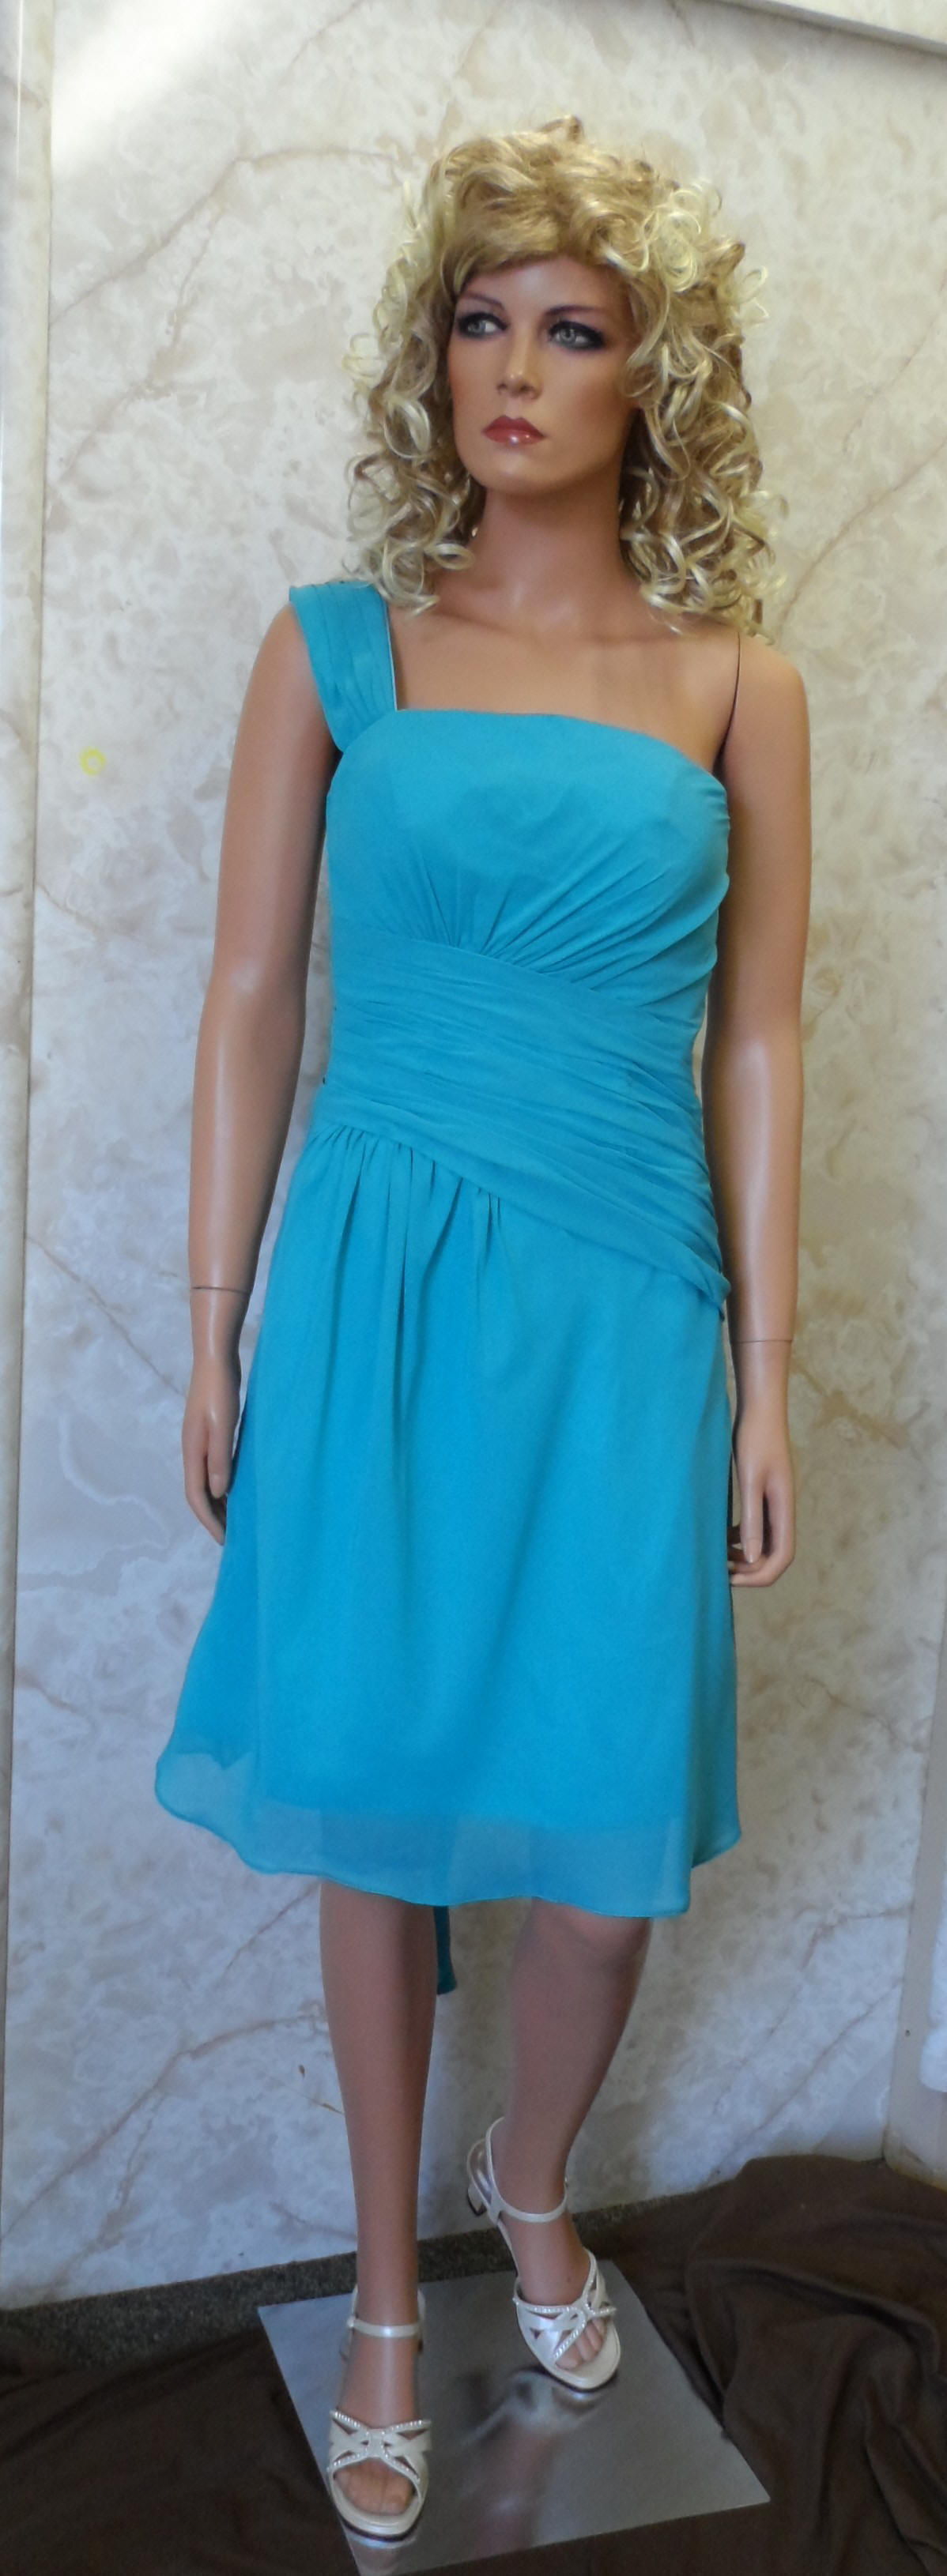 Blue bridesmaid dresses.